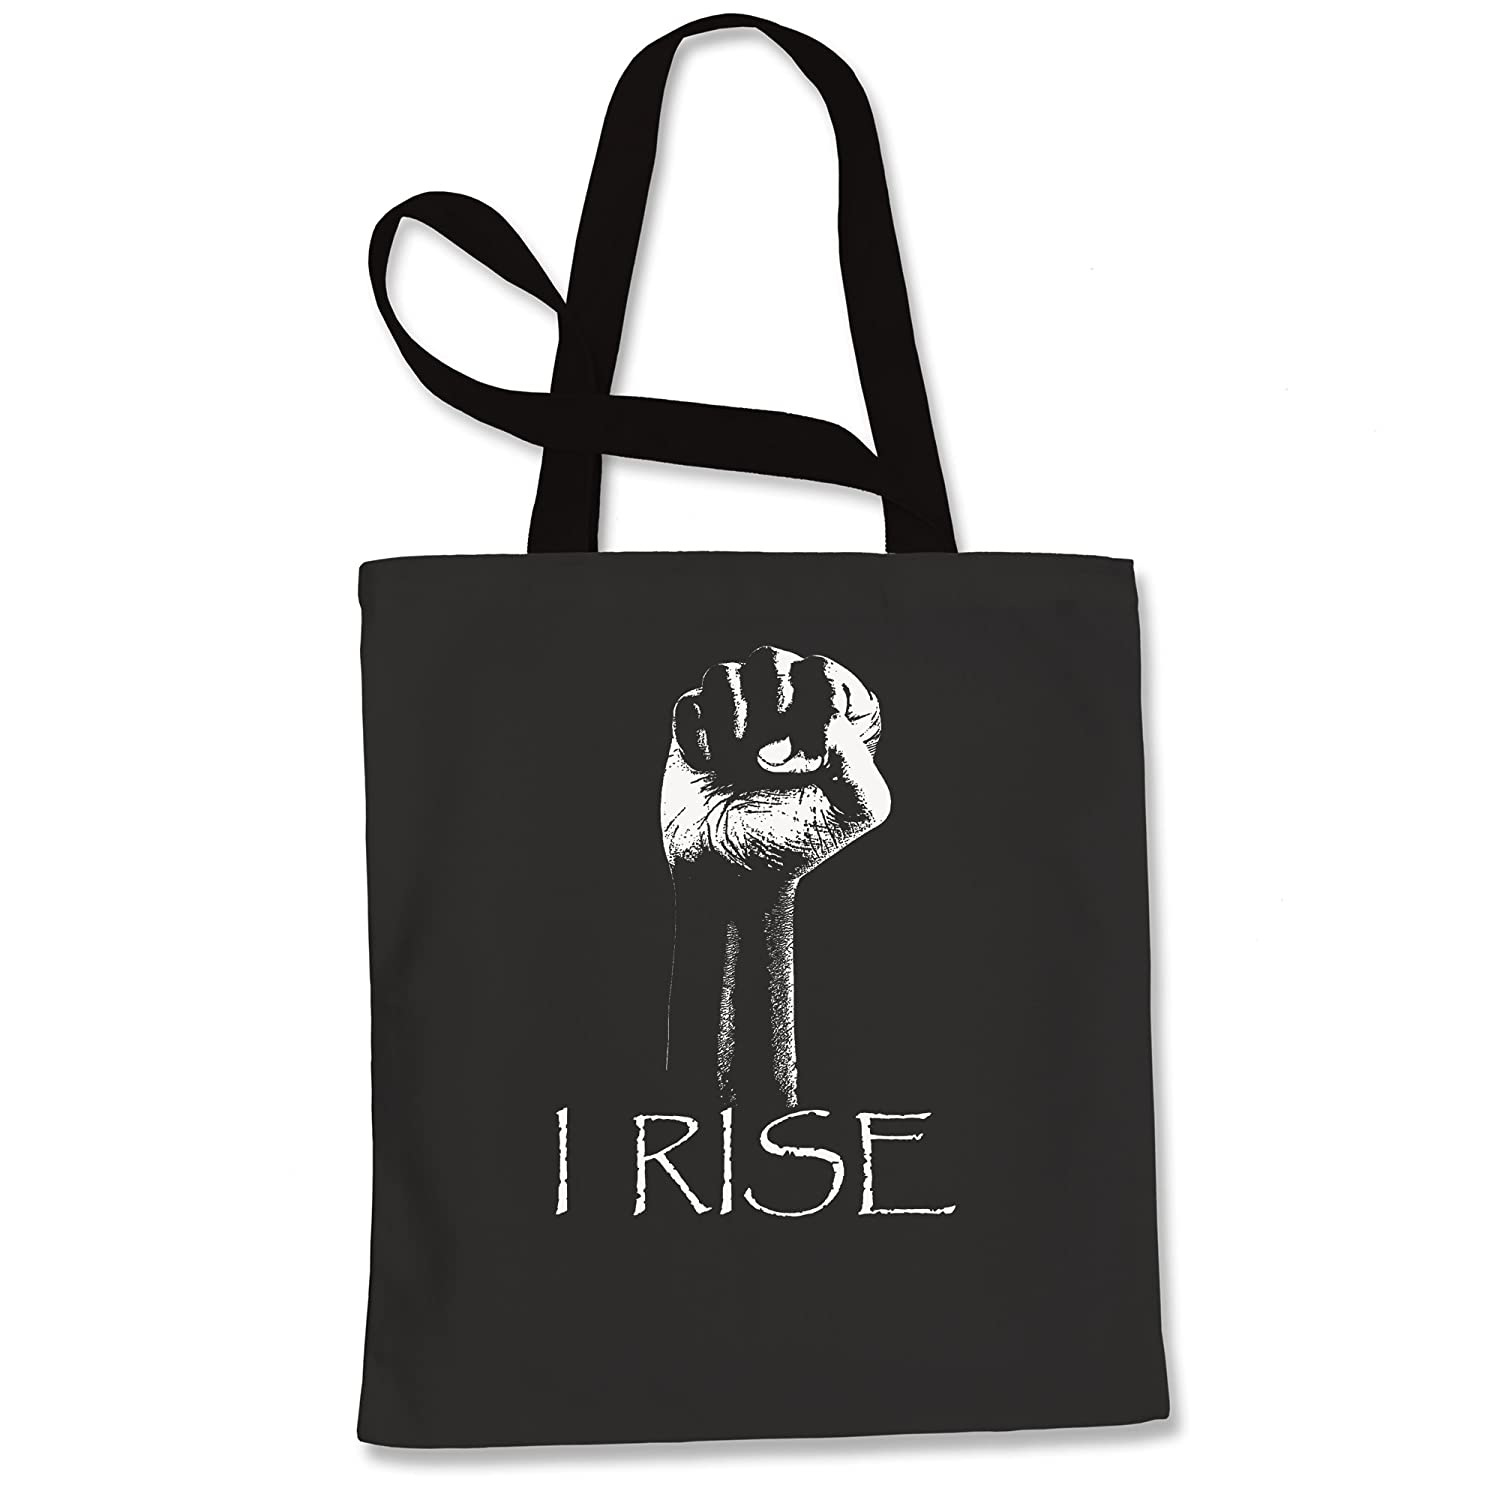 Tote Bag I Rise Quote African-American Pride Fist Navy Blue Shopping Bag